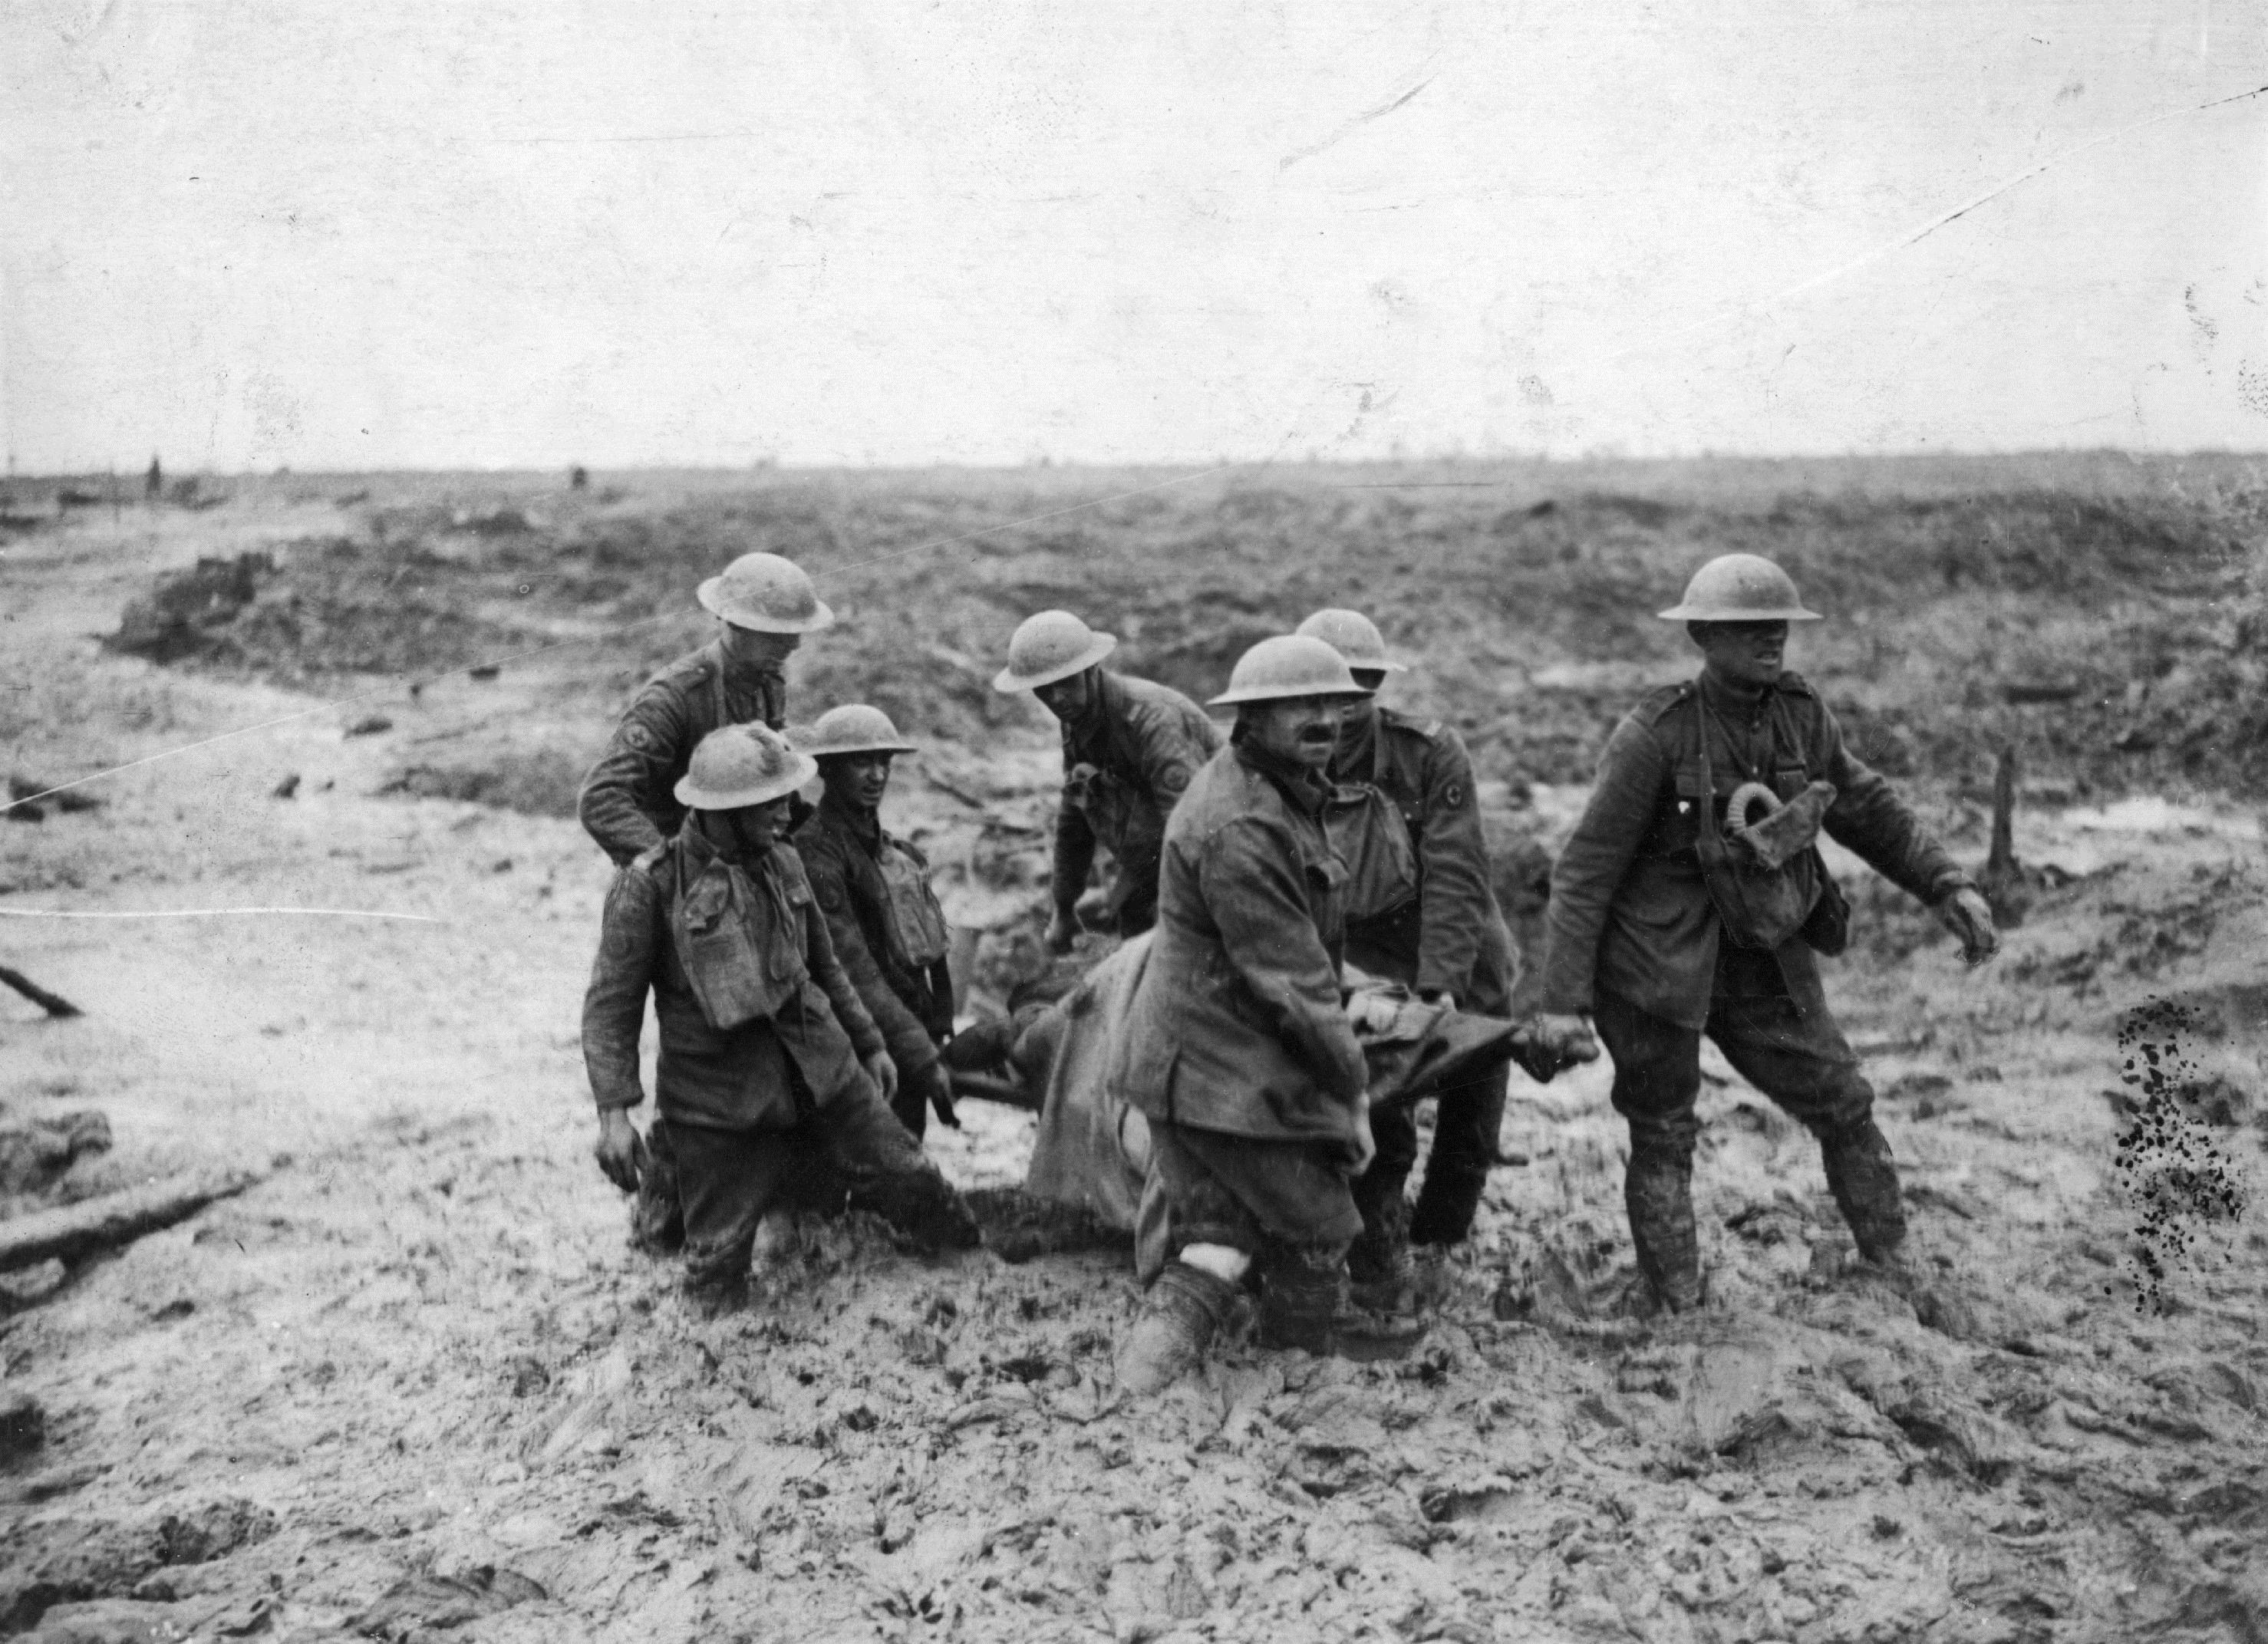 A stretcher party bear a wounded soldier through the mud at Passchendaele.